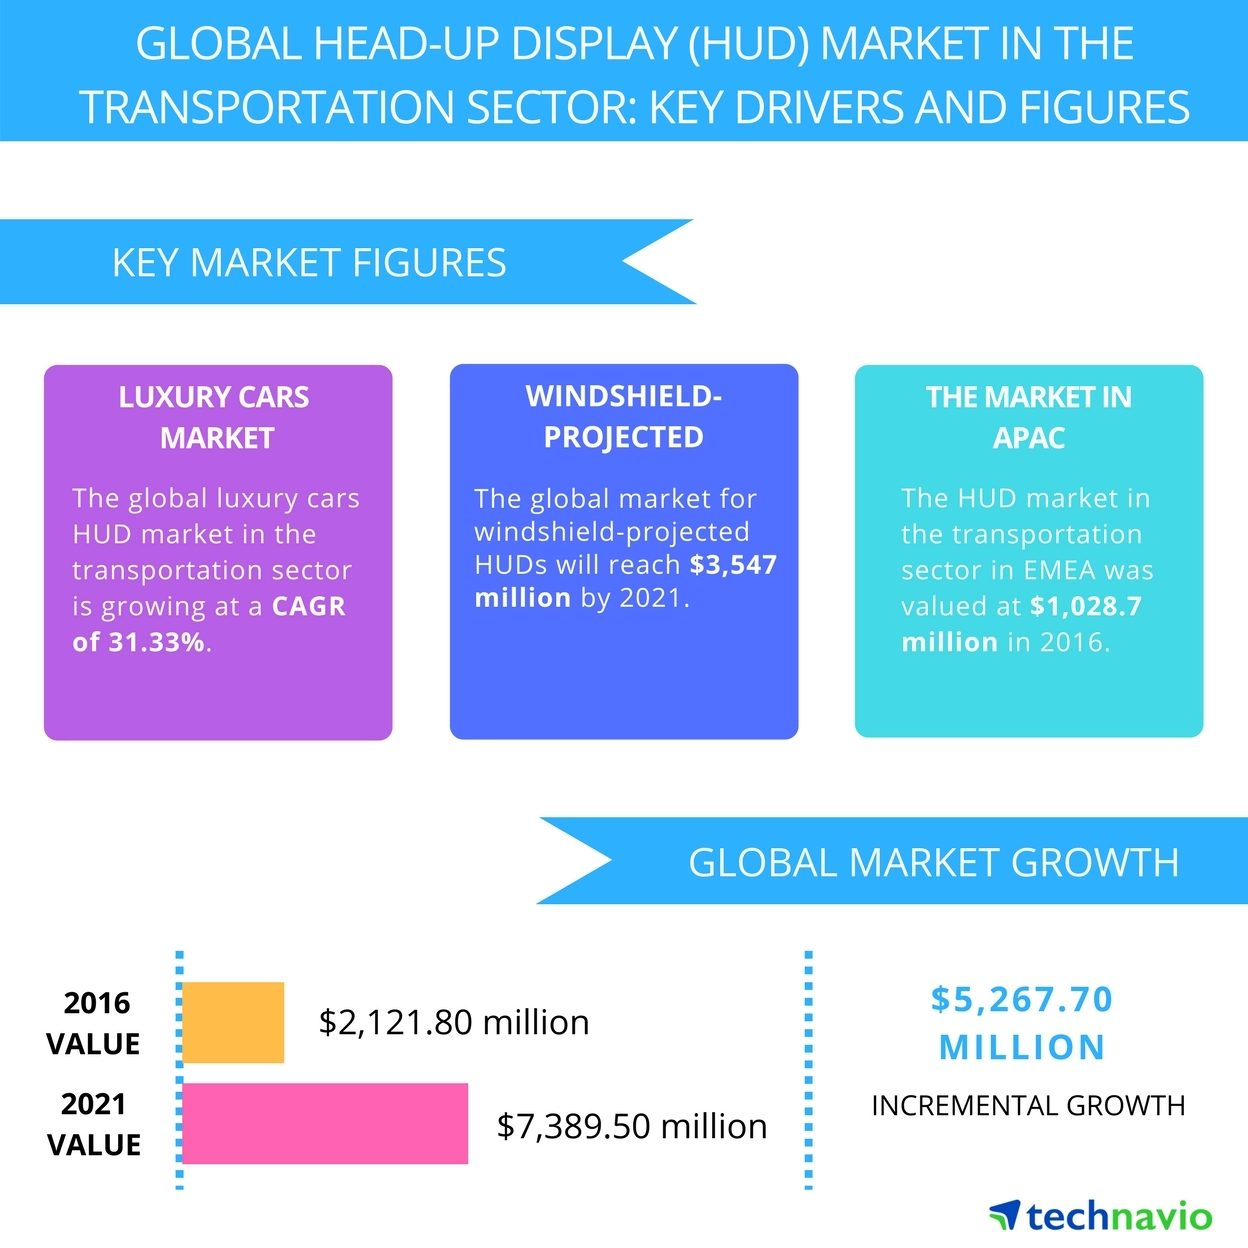 Technavio has published a new report on the global head-up display (HUD) market in the transportation sector from 2017-2021. (Graphic: Business Wire)